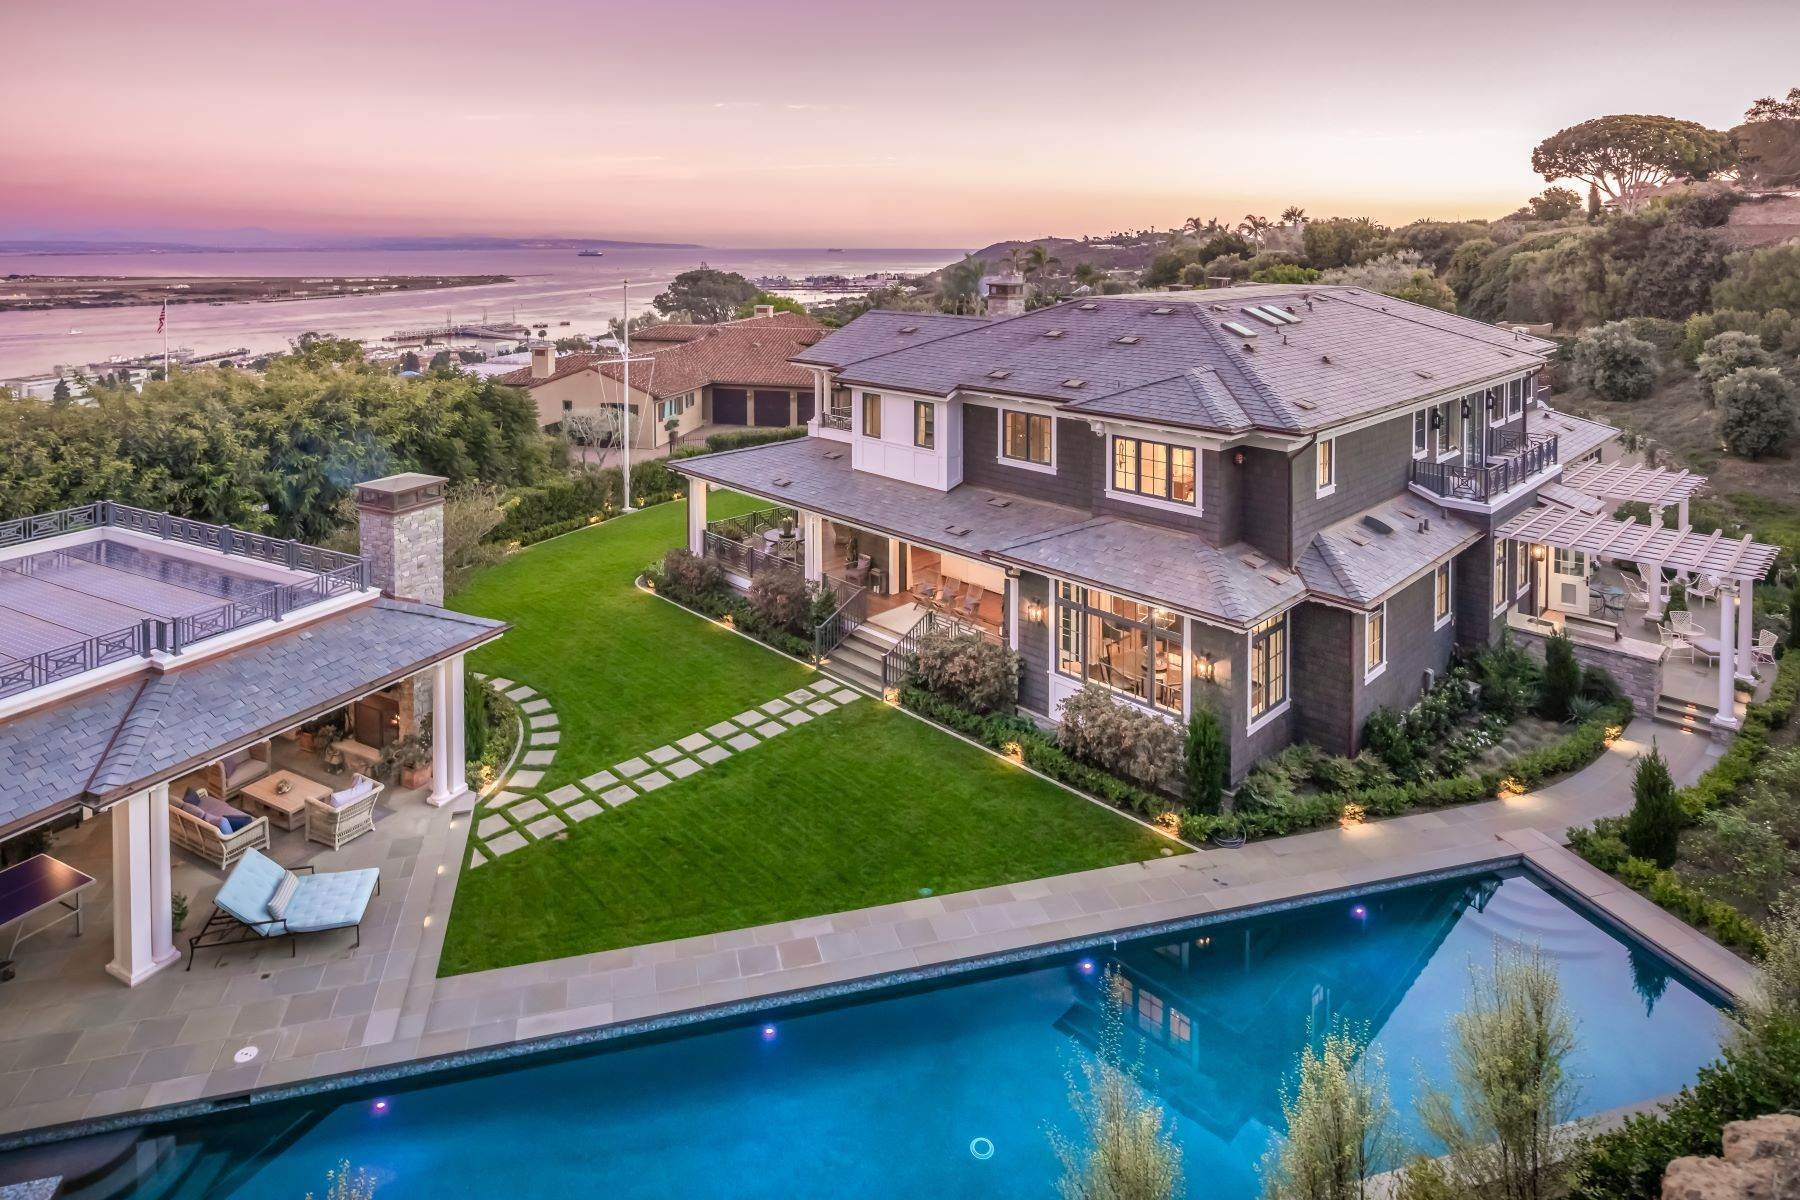 Single Family Homes for Sale at Panoramic Views in Point Loma 3540 Kellogg Way San Diego, California 92106 United States